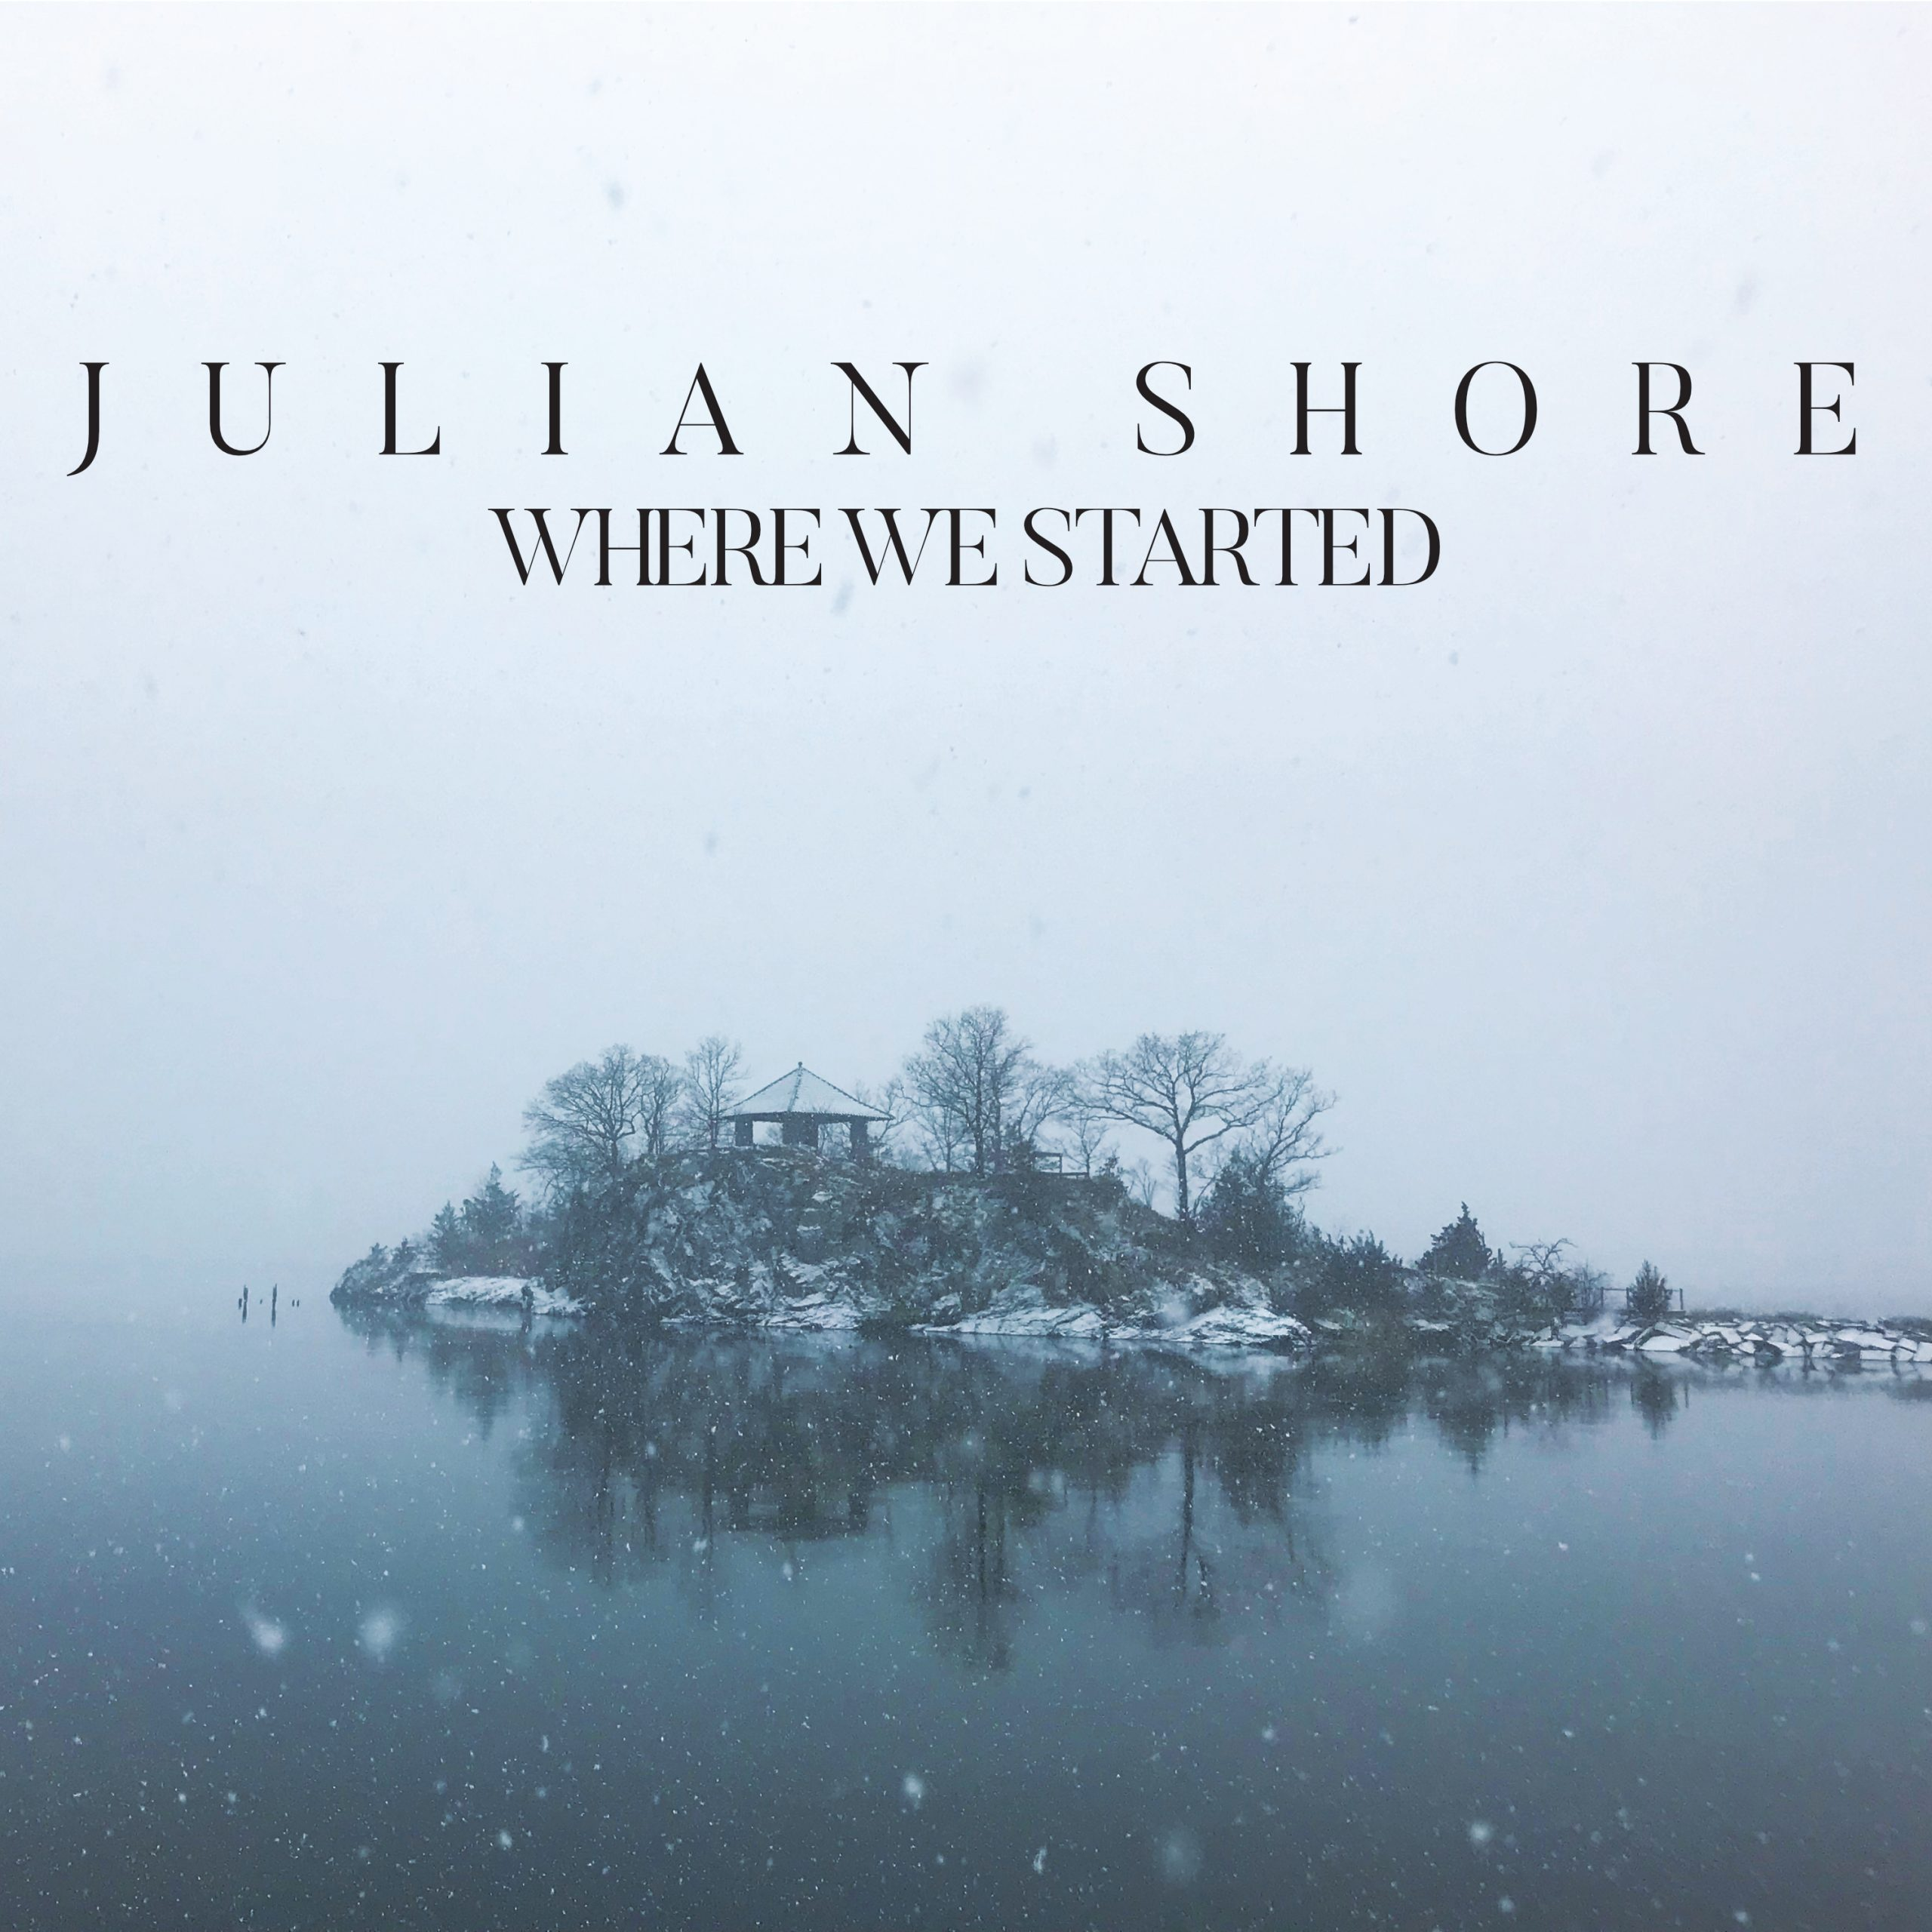 NEW RELEASE: Julian Shore's Third Album WHERE WE STARTED Drops July 3, 2020